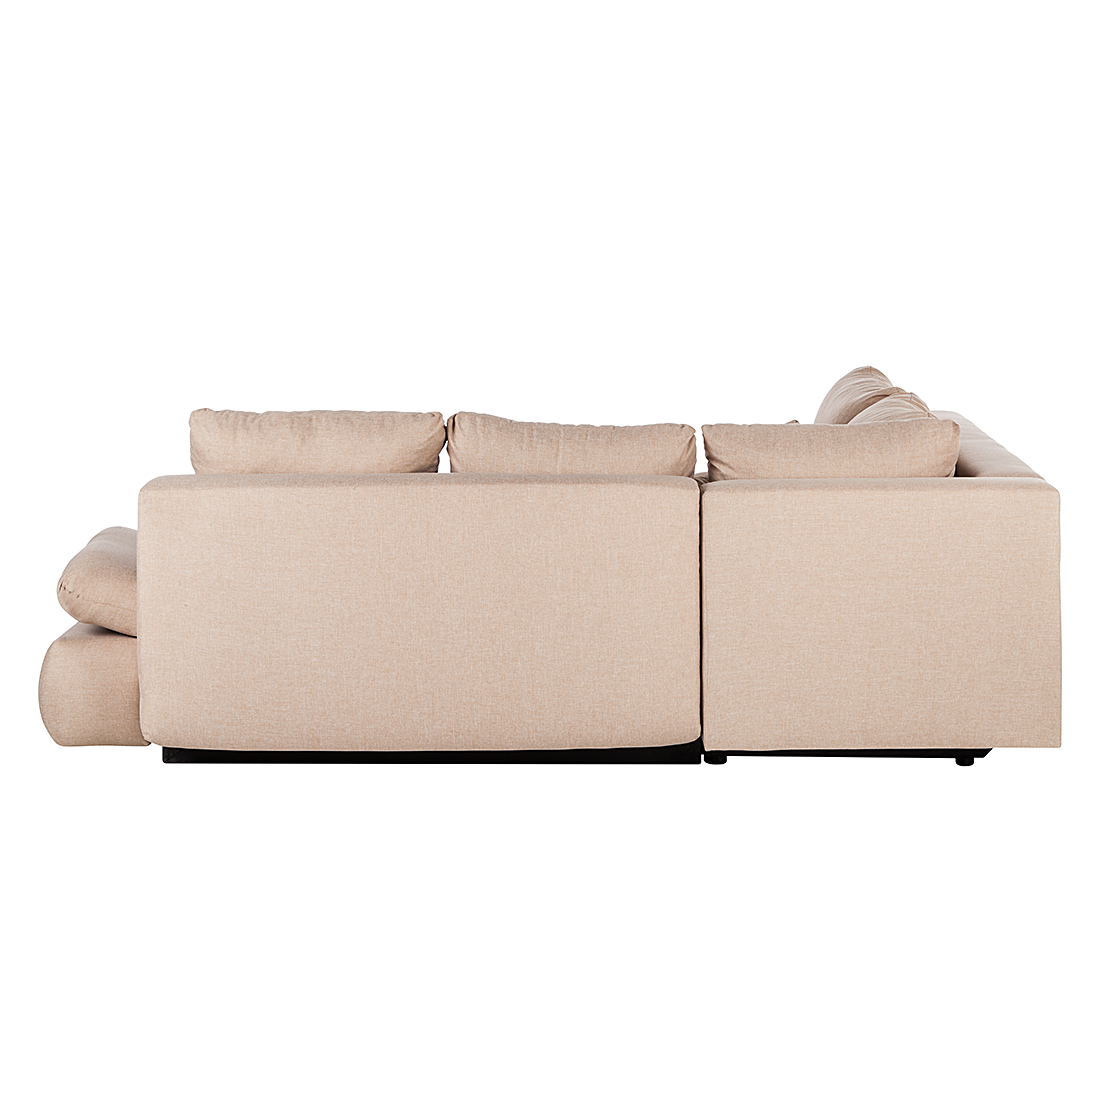 ecksofa mit schlaffunktion beige. Black Bedroom Furniture Sets. Home Design Ideas